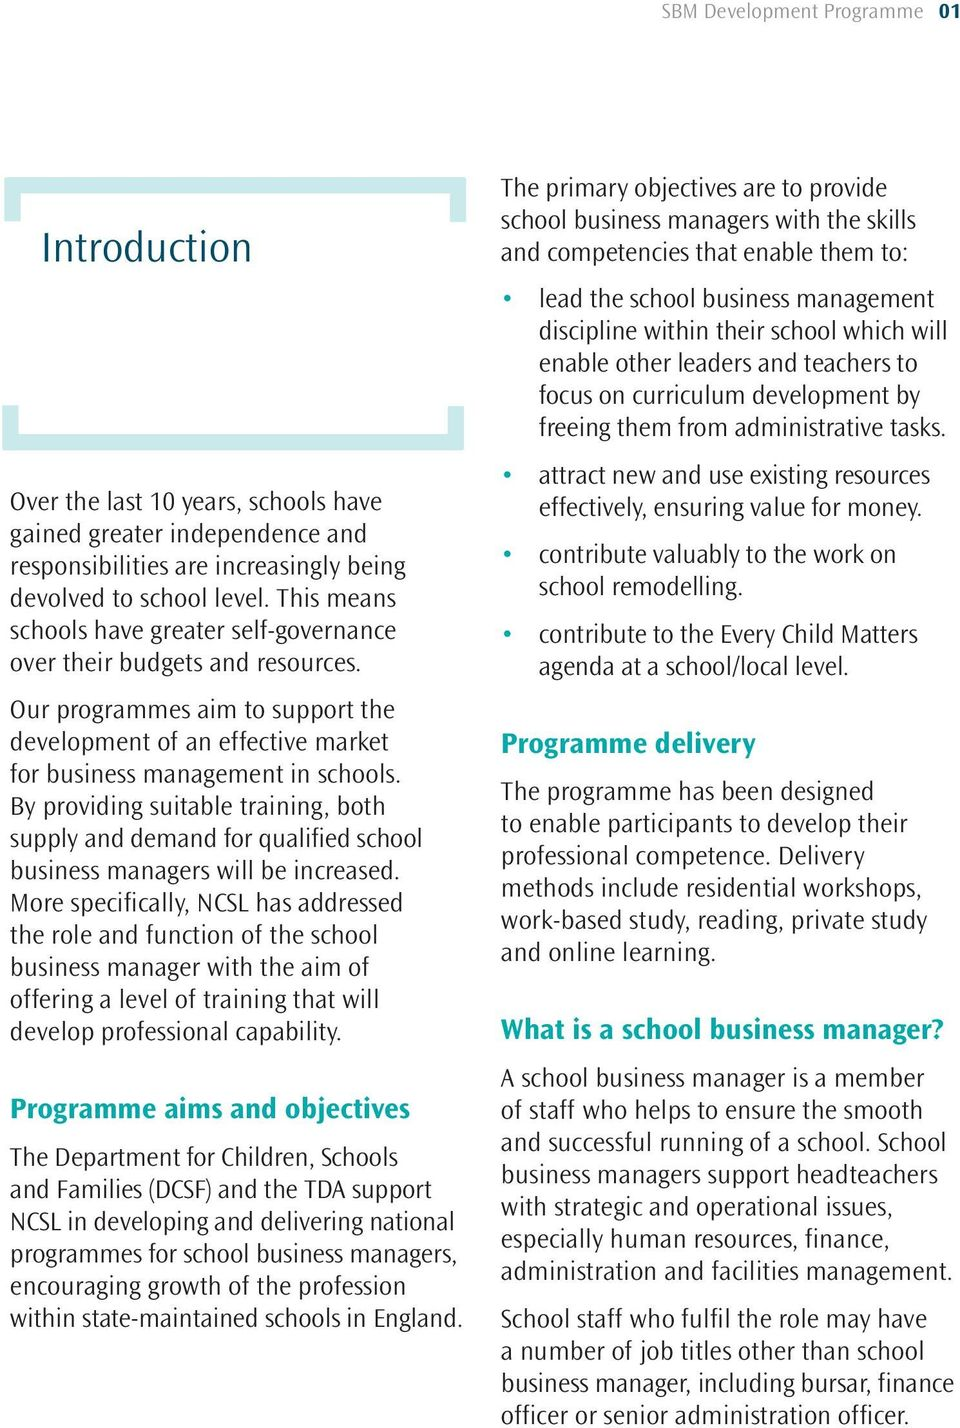 By providing suitable training, both supply and demand for qualified school business managers will be increased.